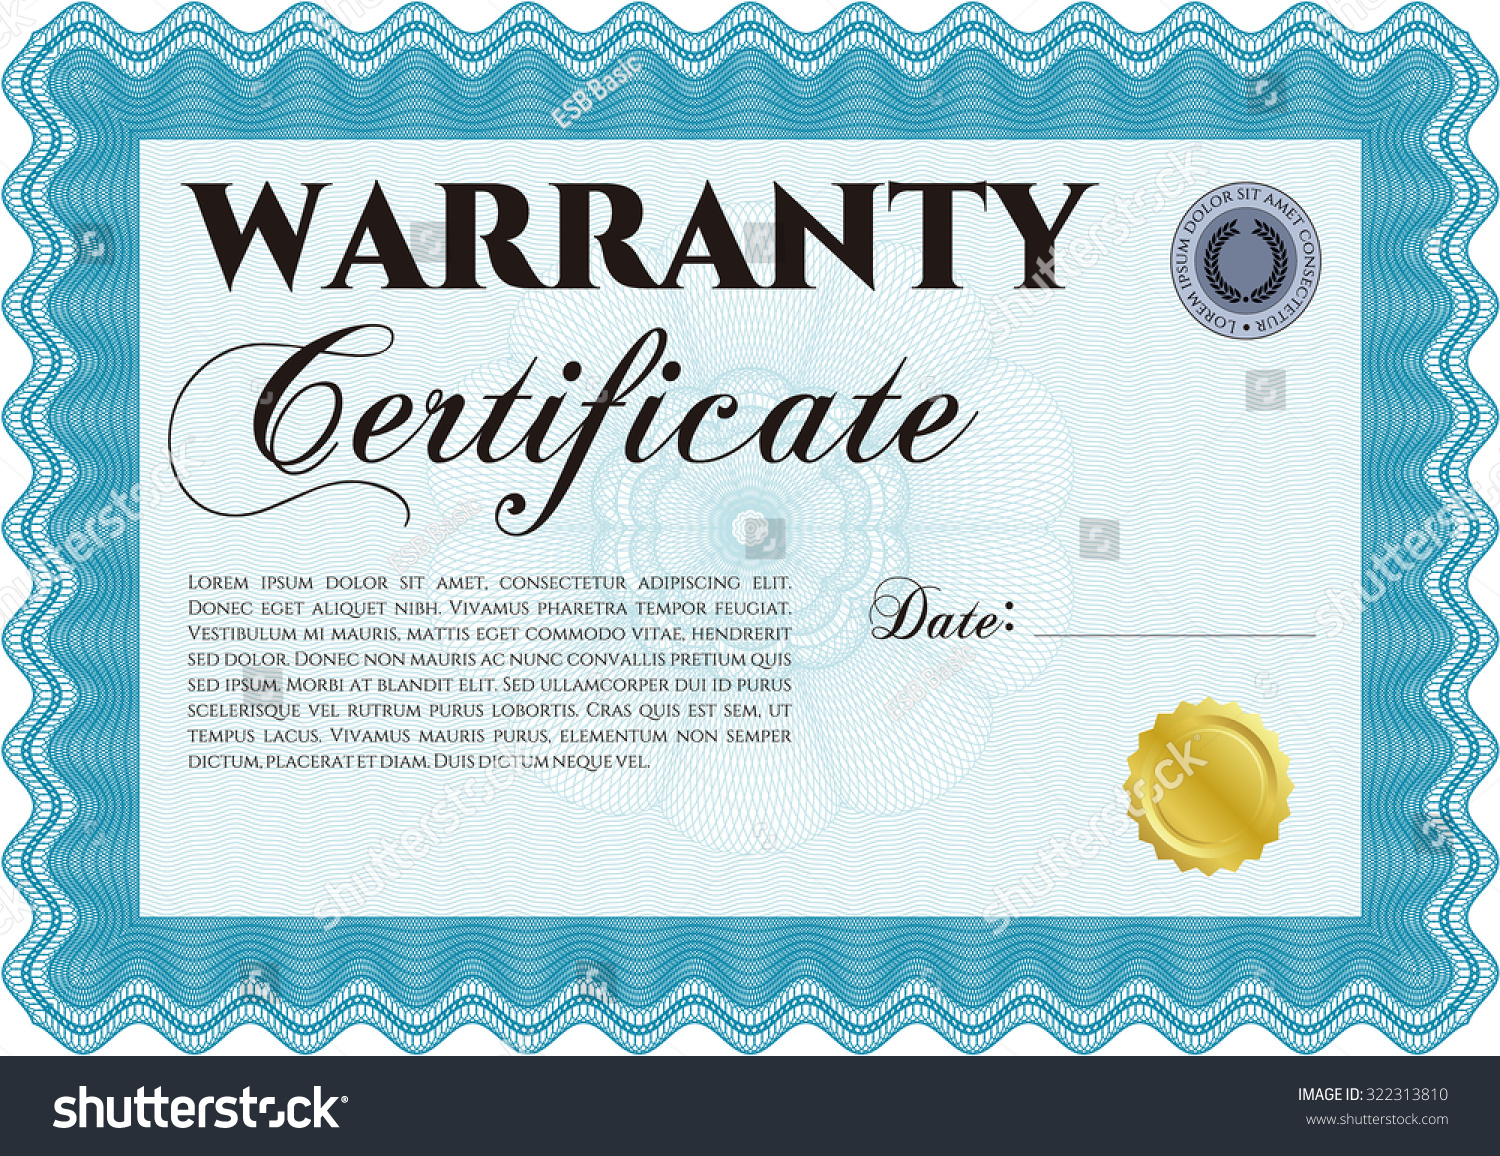 Beautiful product warranty template photos entry level resume warranty certificate template complex frame design stock vector yadclub Choice Image